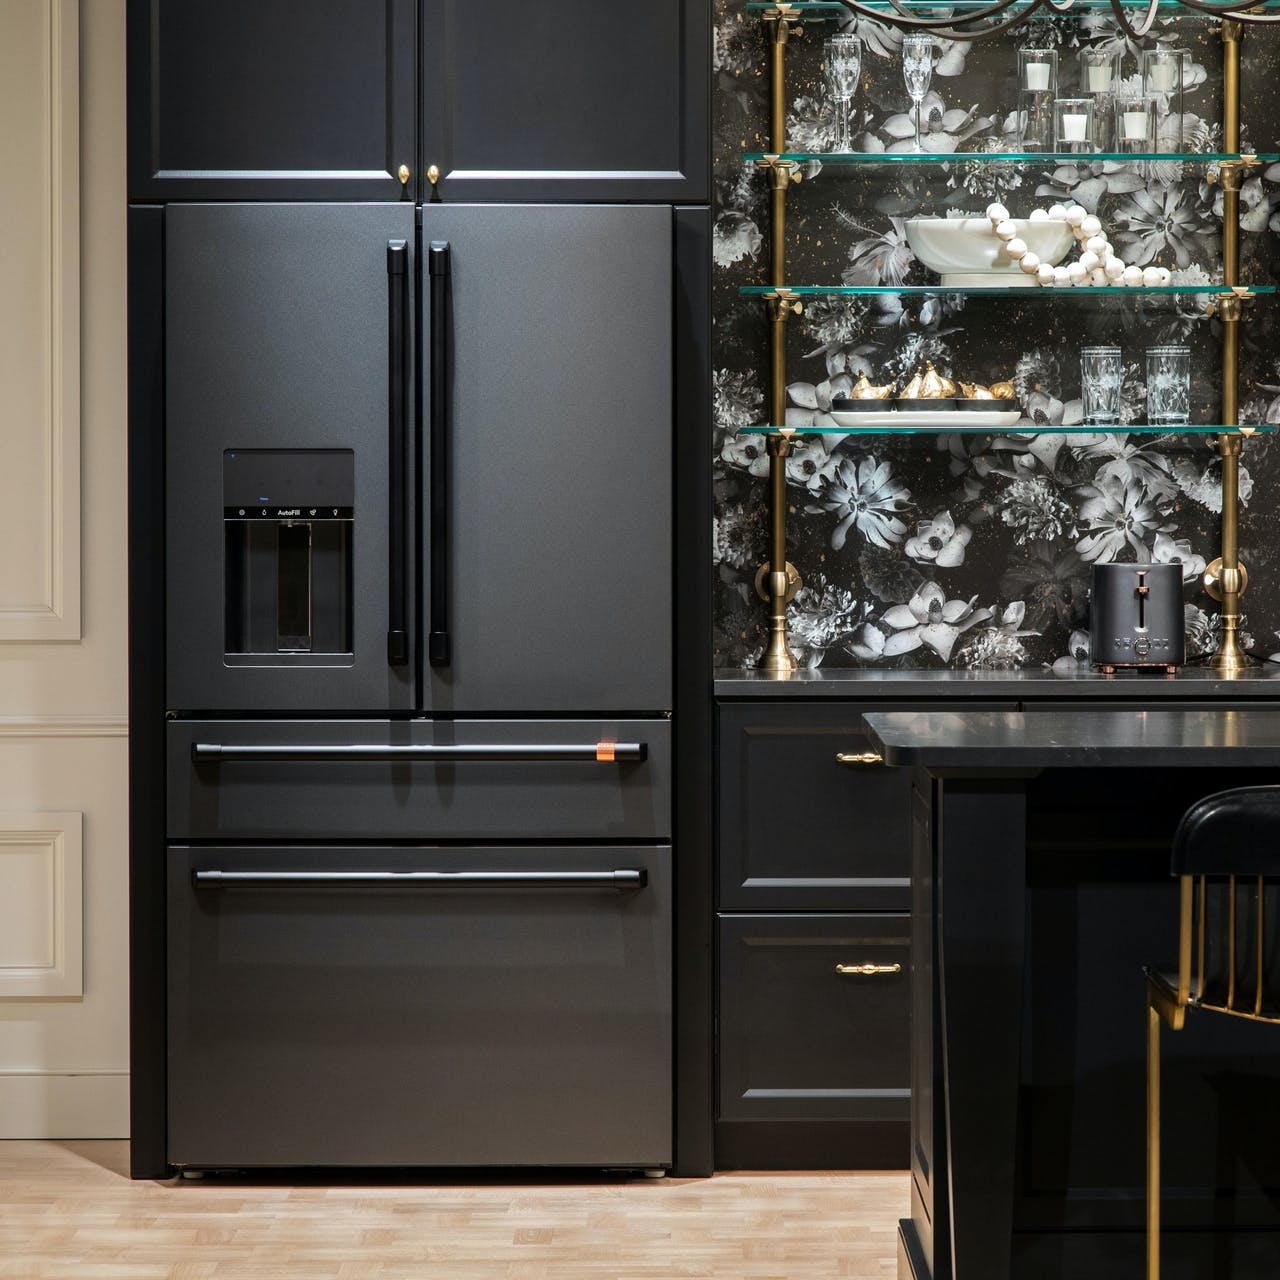 Cafe French Door Refrigerator in Matte Black with Flat Black Hardware